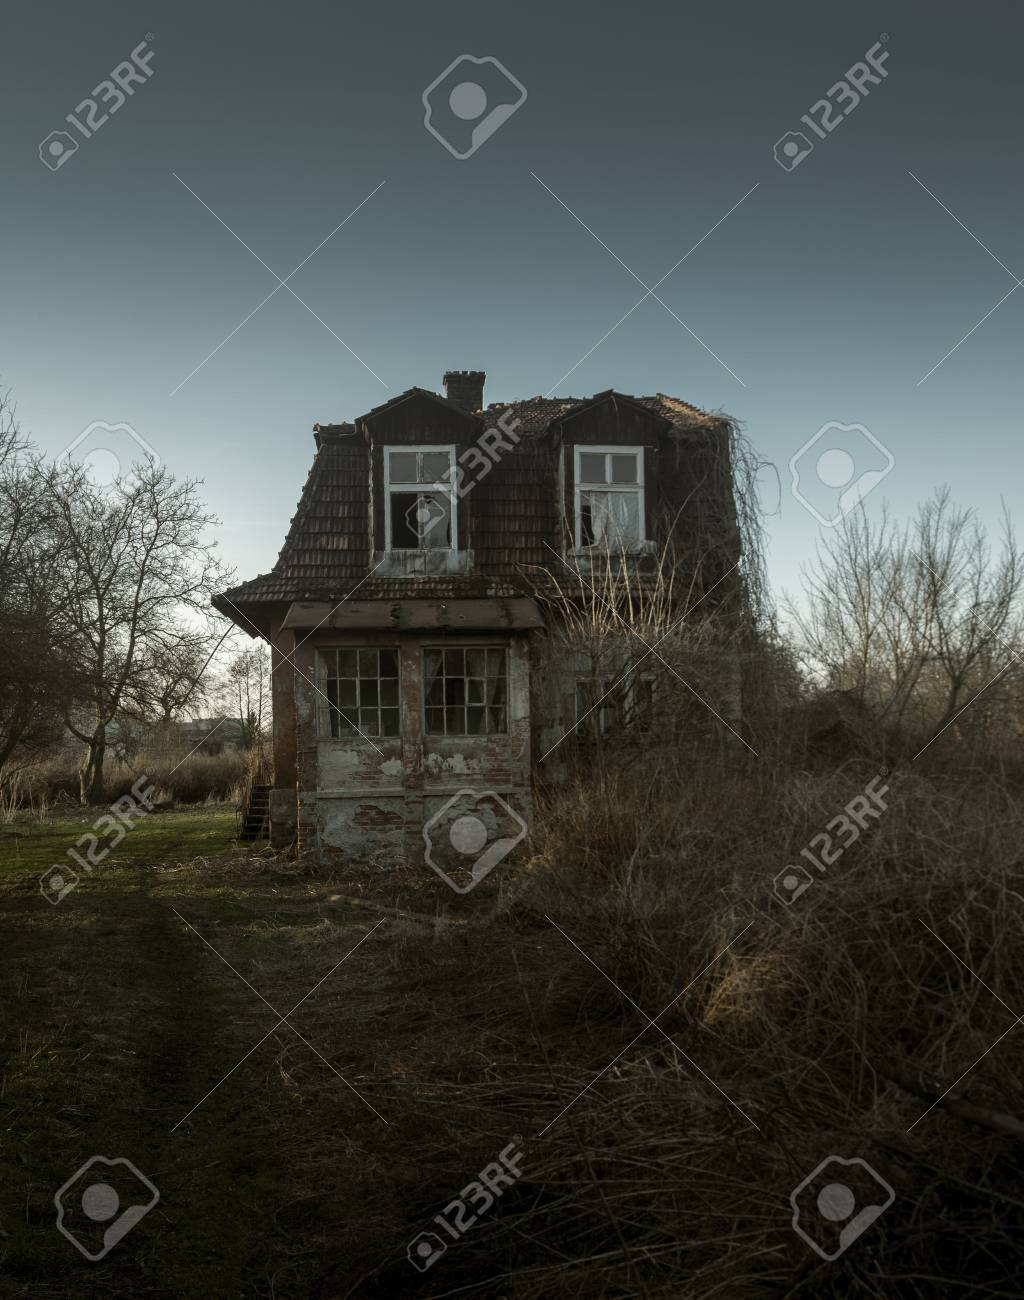 Creepy And Scary Abandoned House Stock Photo Picture And Royalty Free Image Image 88220038